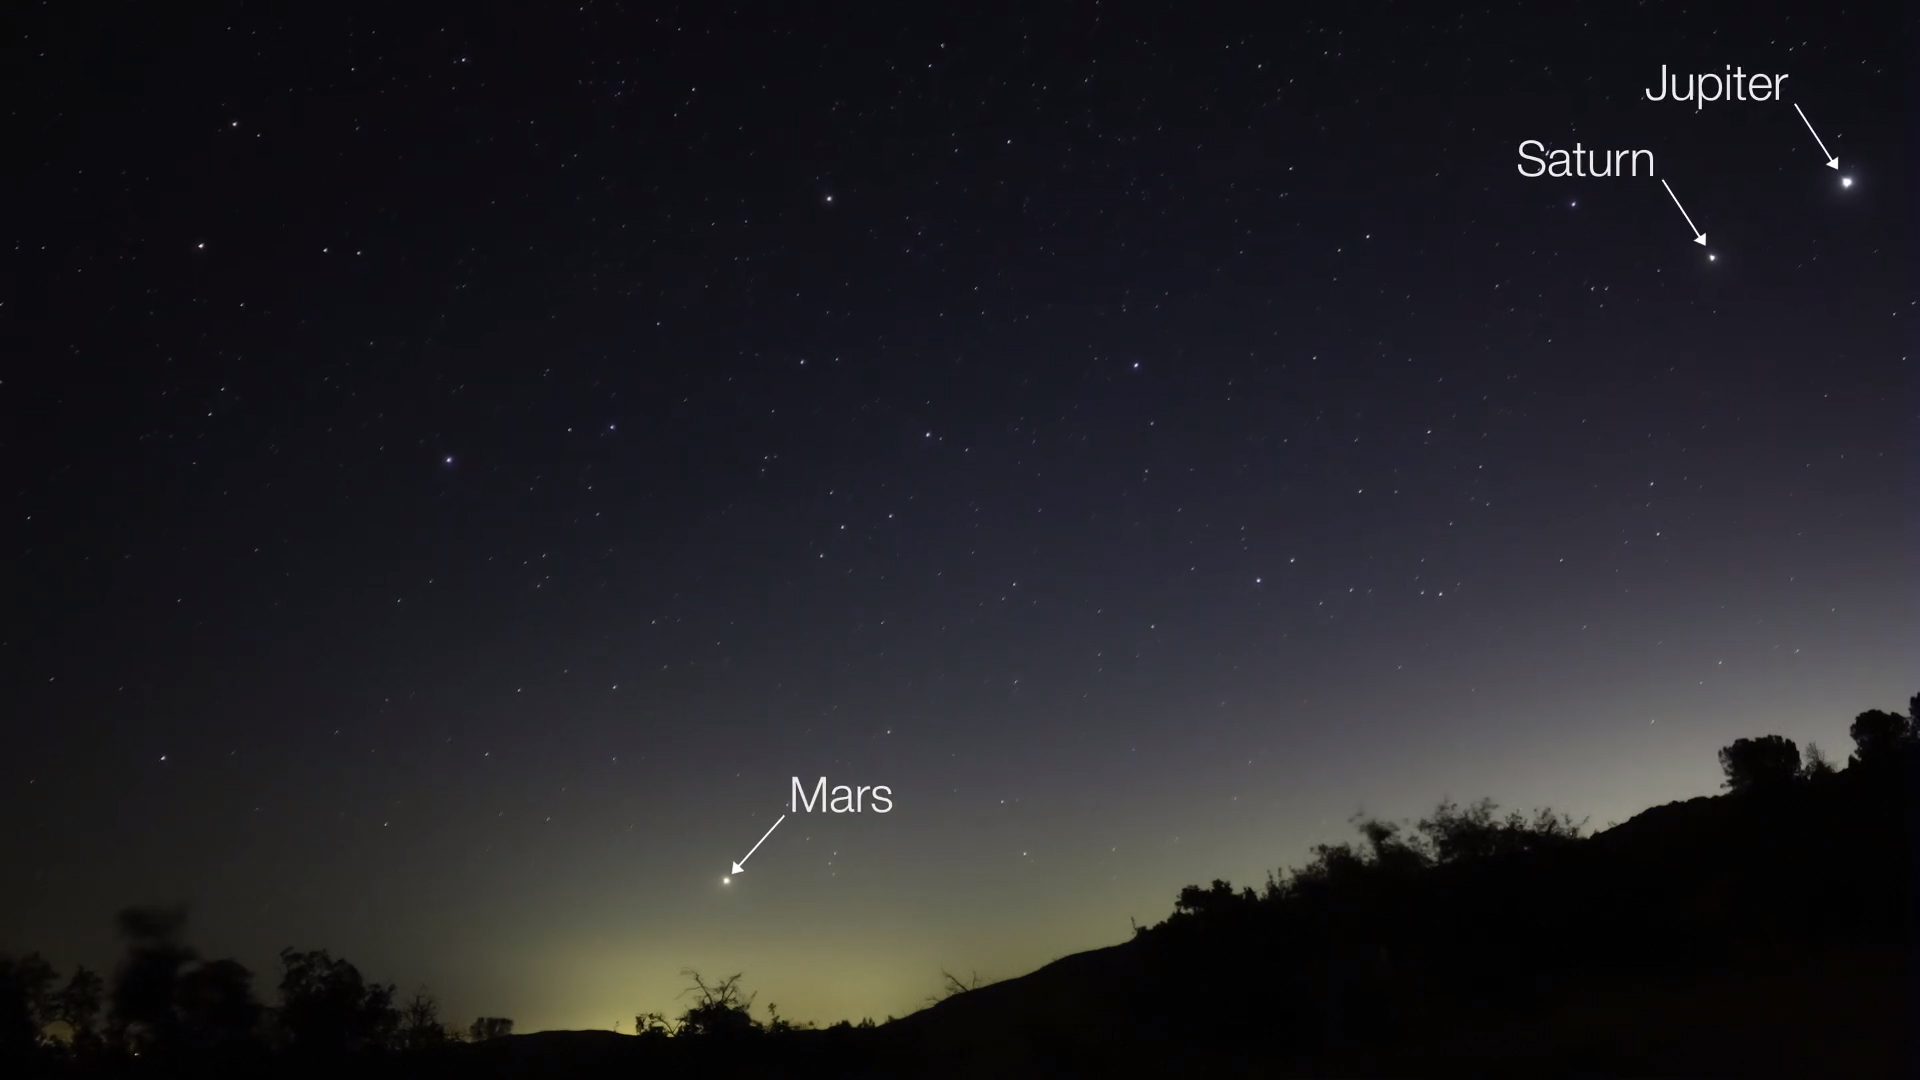 Night sky photo of Mars rising at bottom center, with Jupiter and Saturn at upper right.